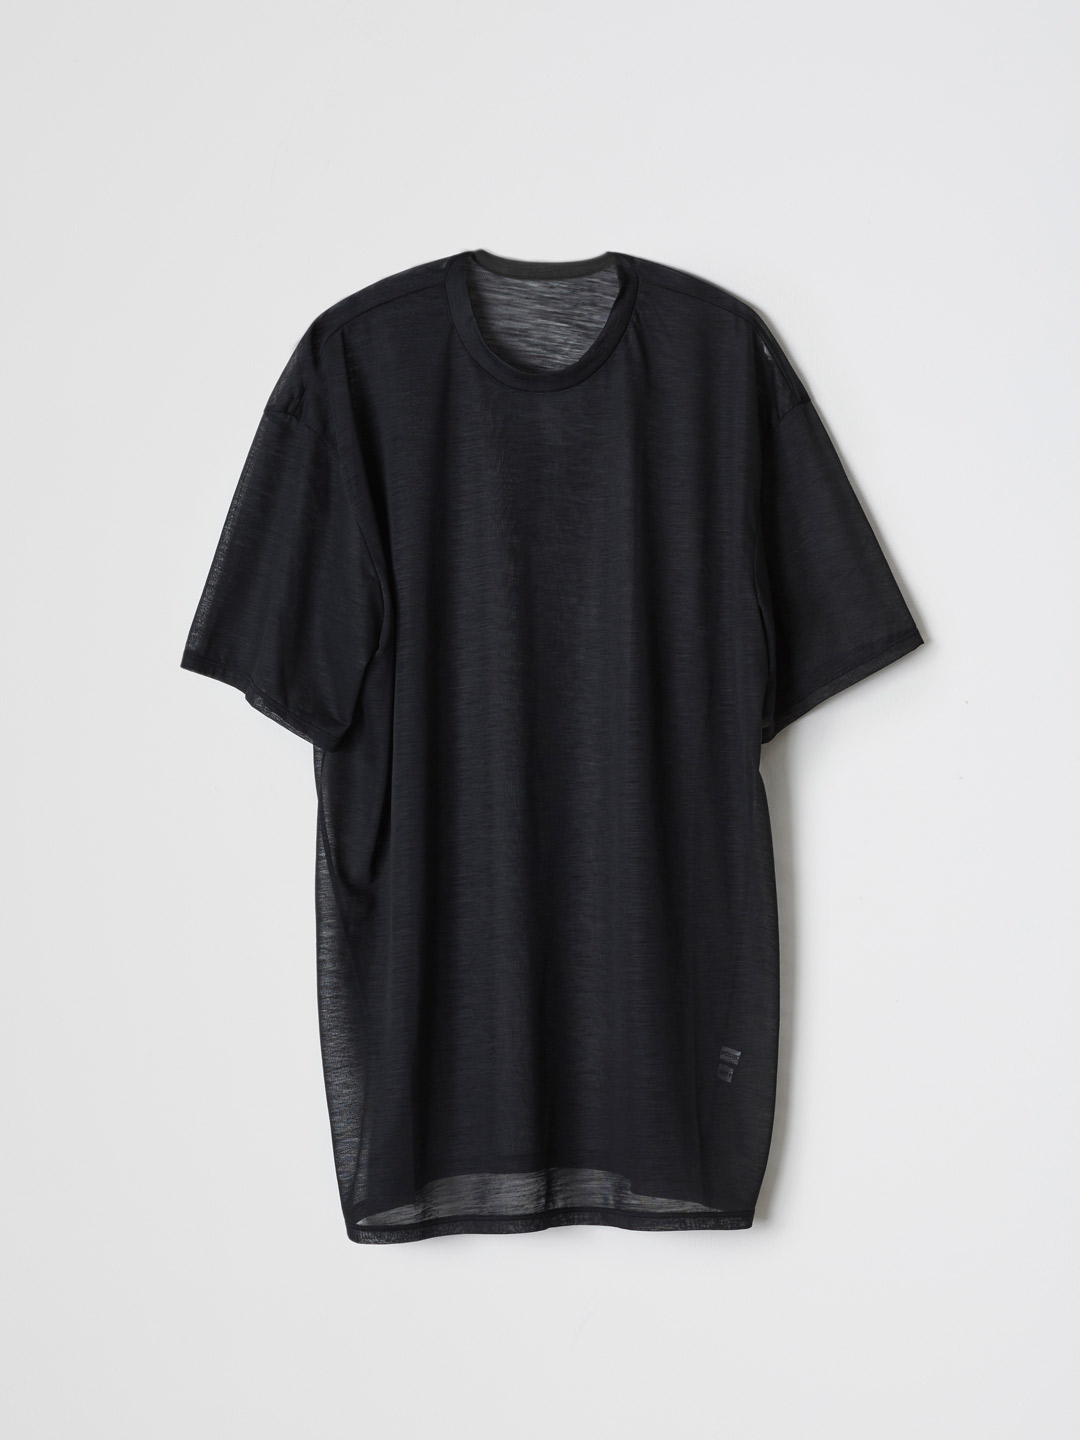 Fine Summer Wool T-Shirts - Black